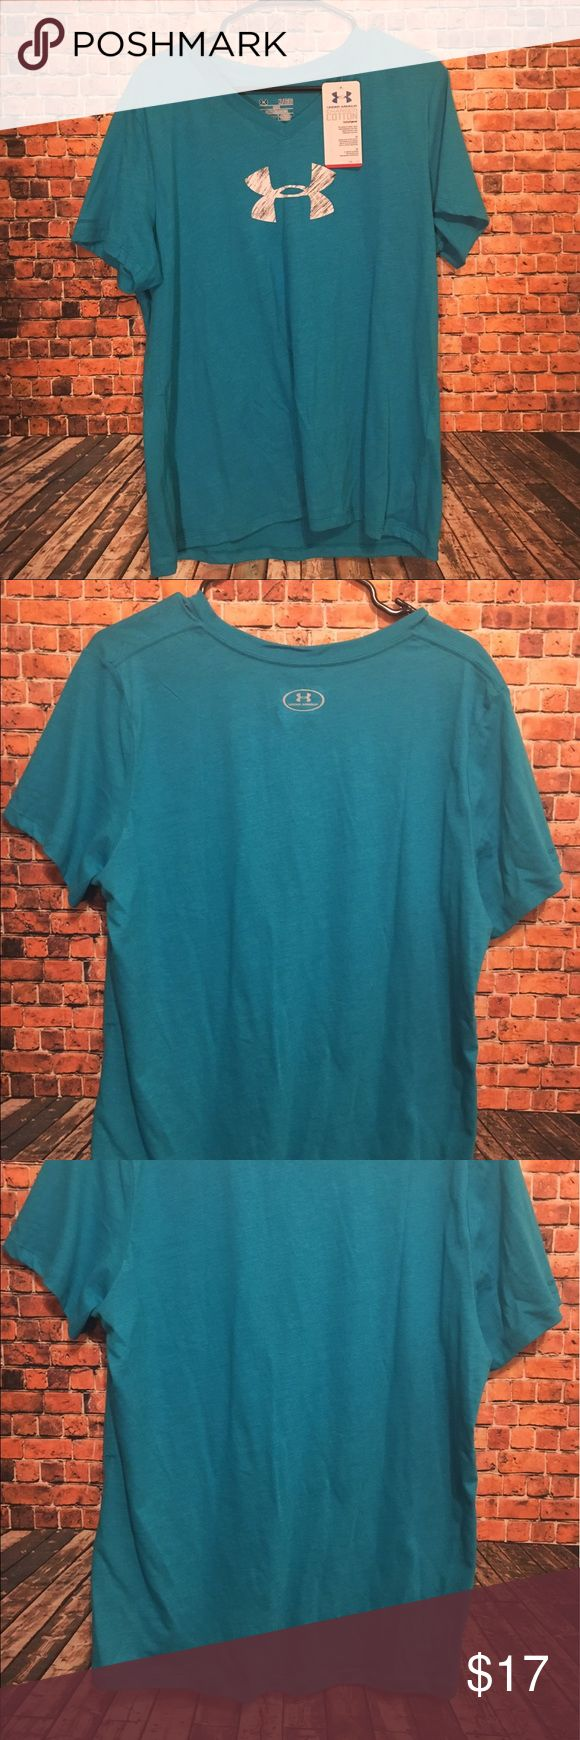 NWT Women's Under Armour  T Shirt New size XL Under Armour Tops Tees - Short Sleeve